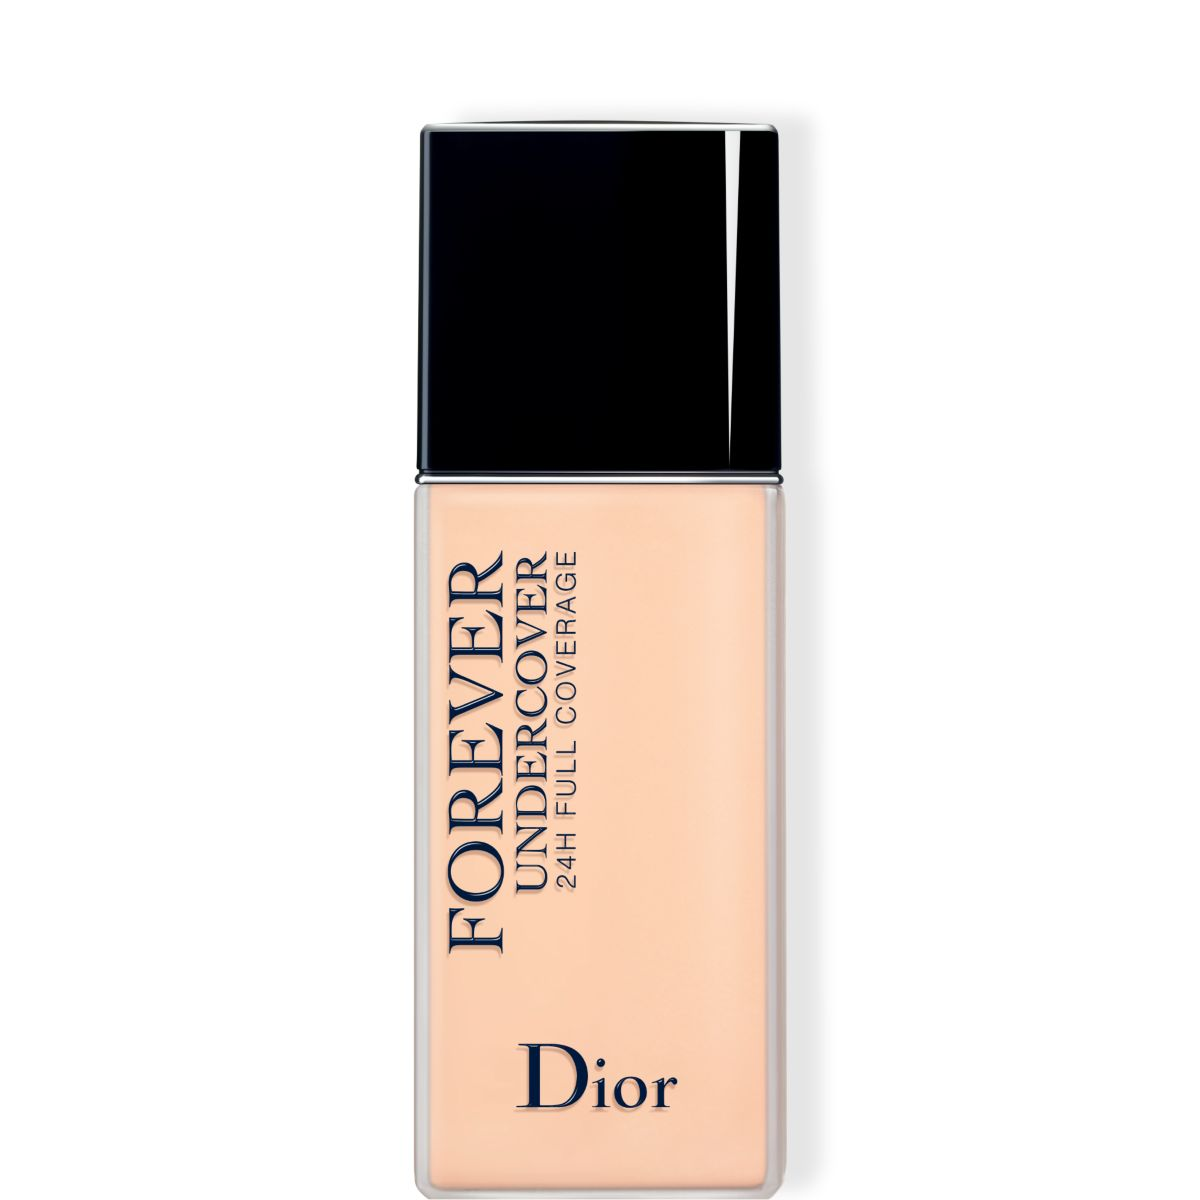 Dior - Diorskin Forever Undercover - Teint Ultra-Fluide Haute Couvrance 24h*